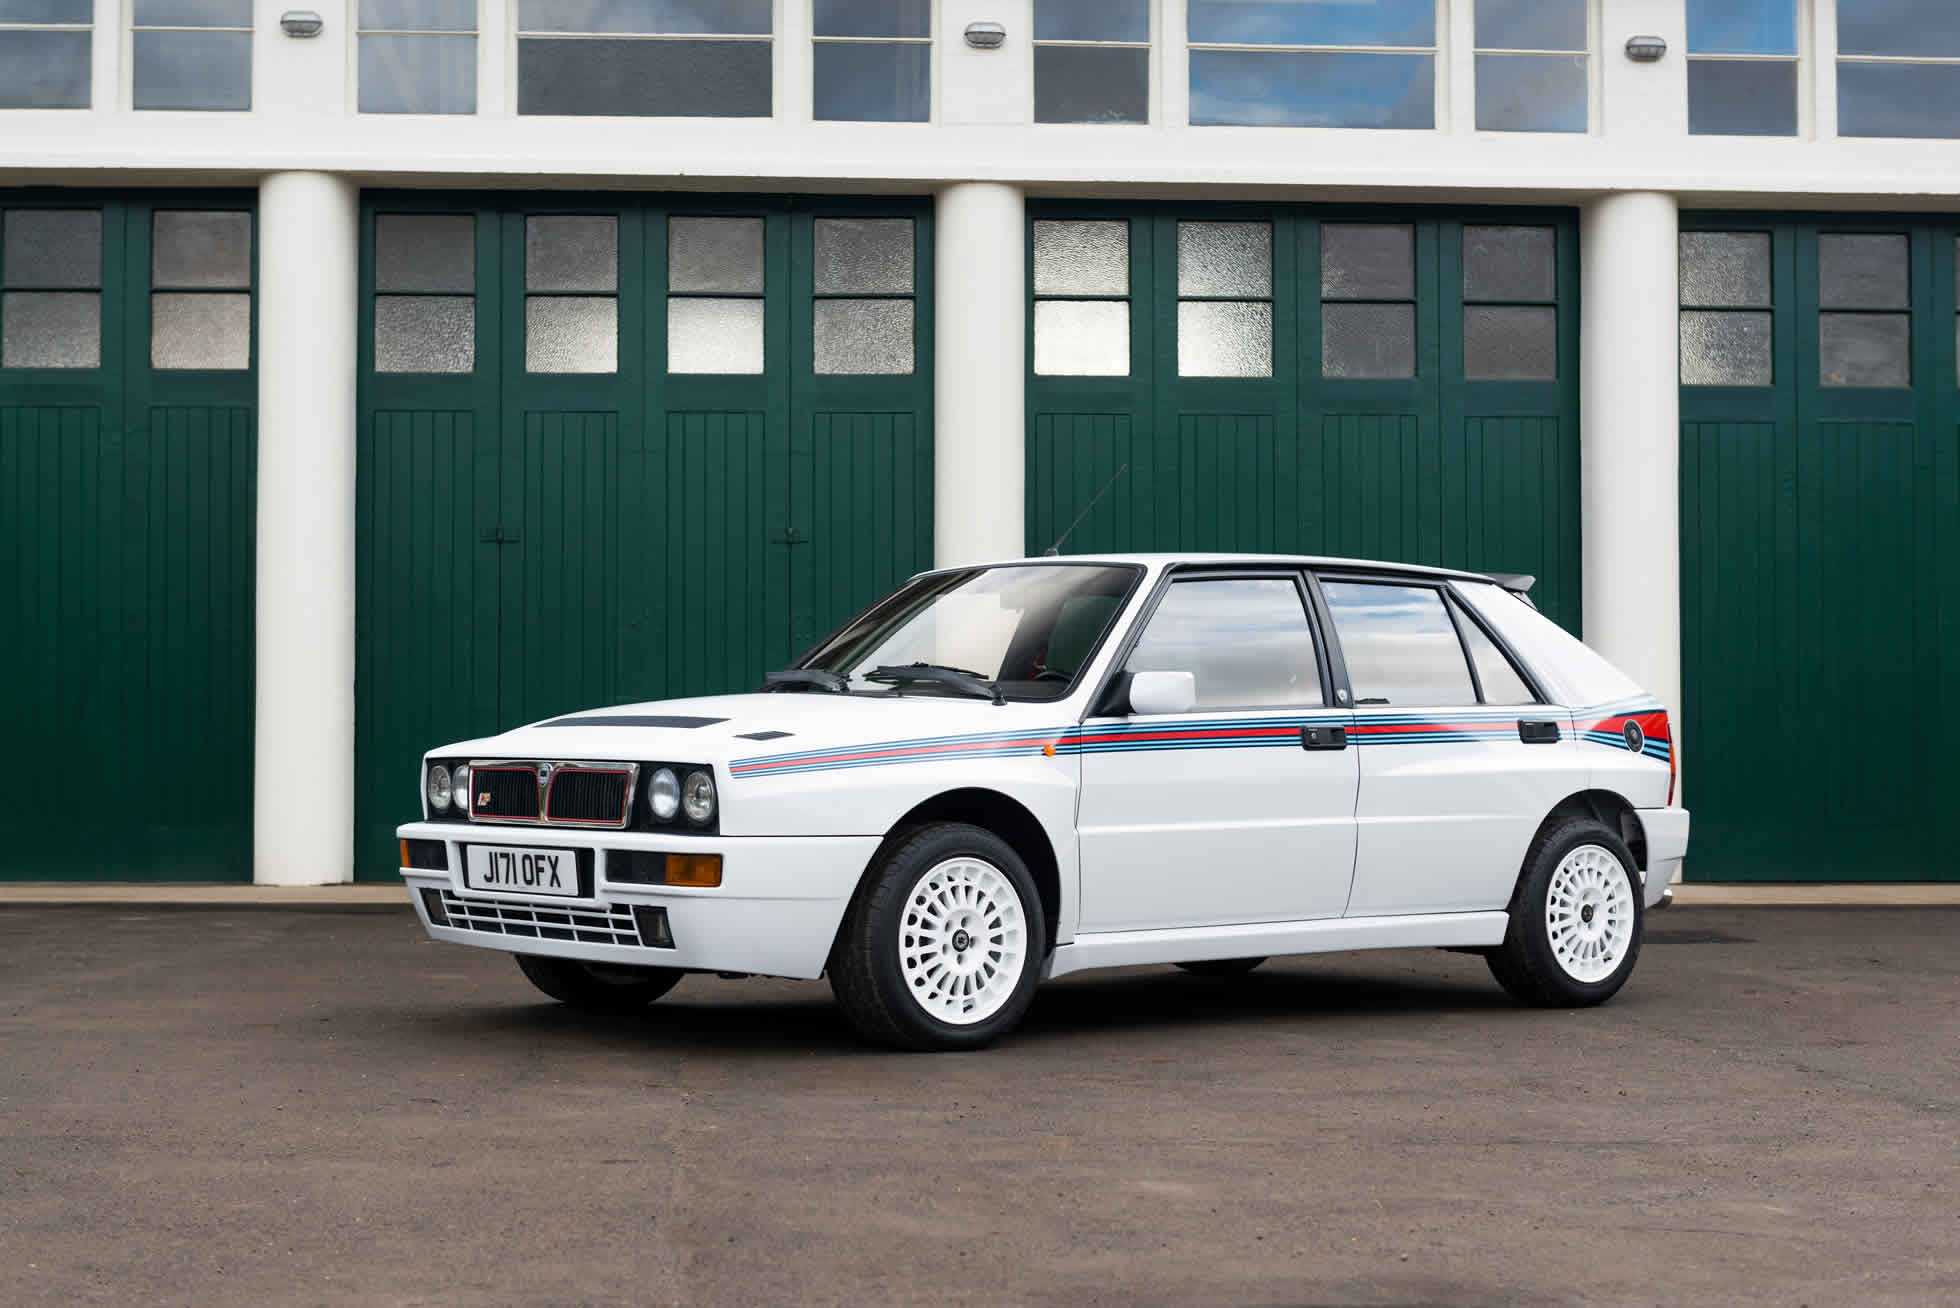 For Sale 1992 Lacia Delta Integrale EVO 'Martini 5' side views